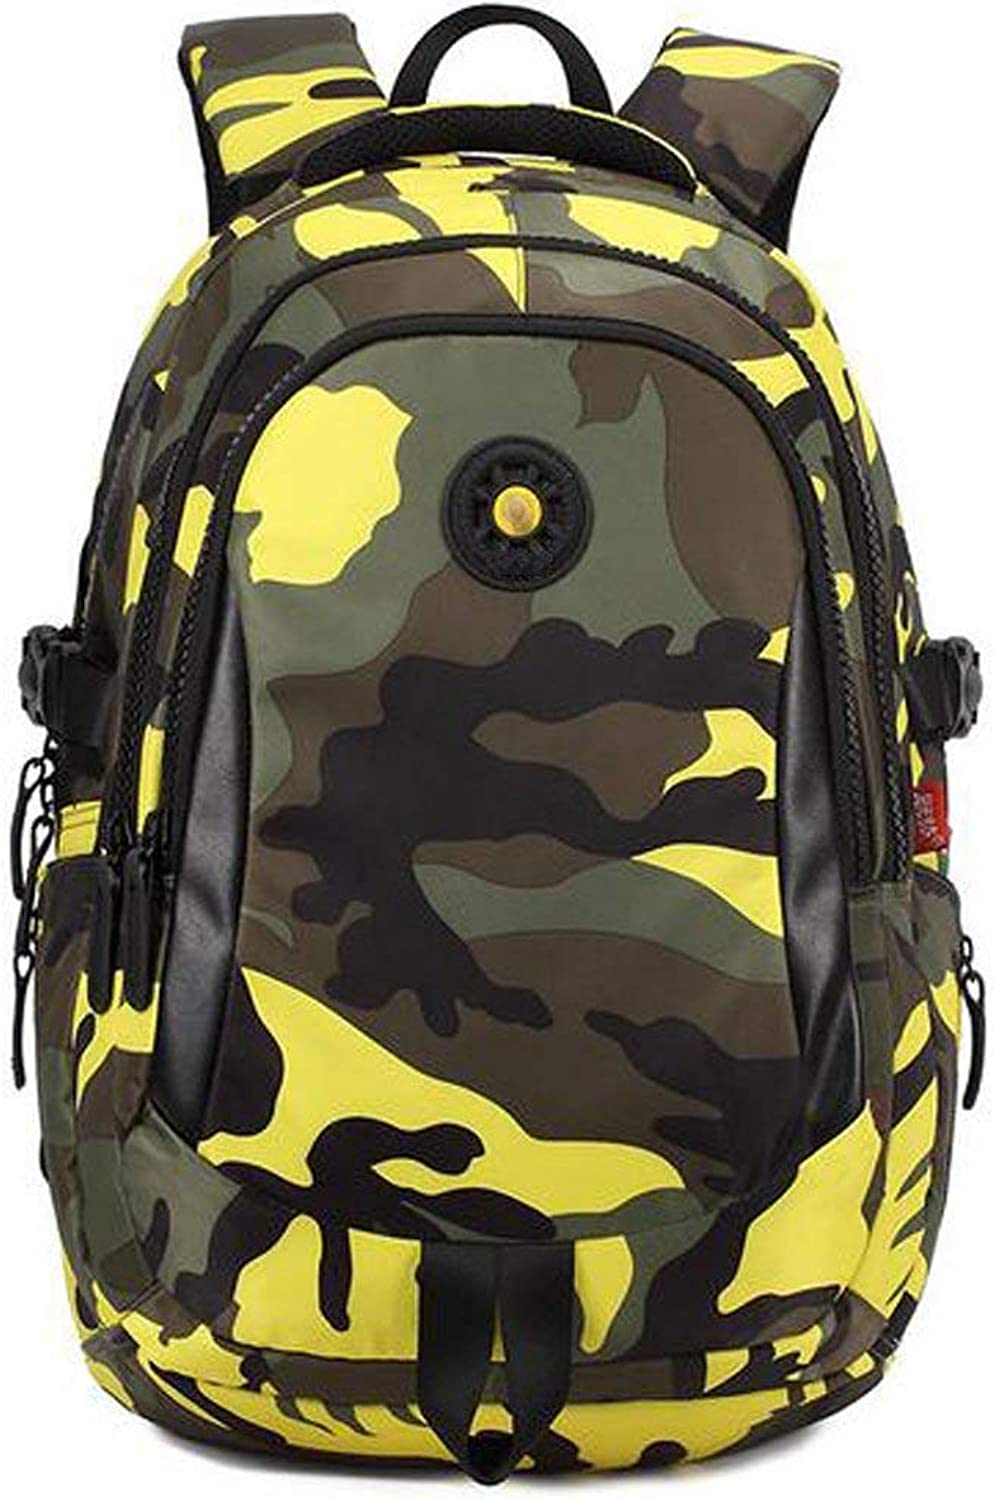 ZBHW Camouflage Printed Primary School Nylon Backpack - Ideal for 1-6 Grade School Students Boys Girls Daily Use and Outdoor Activities